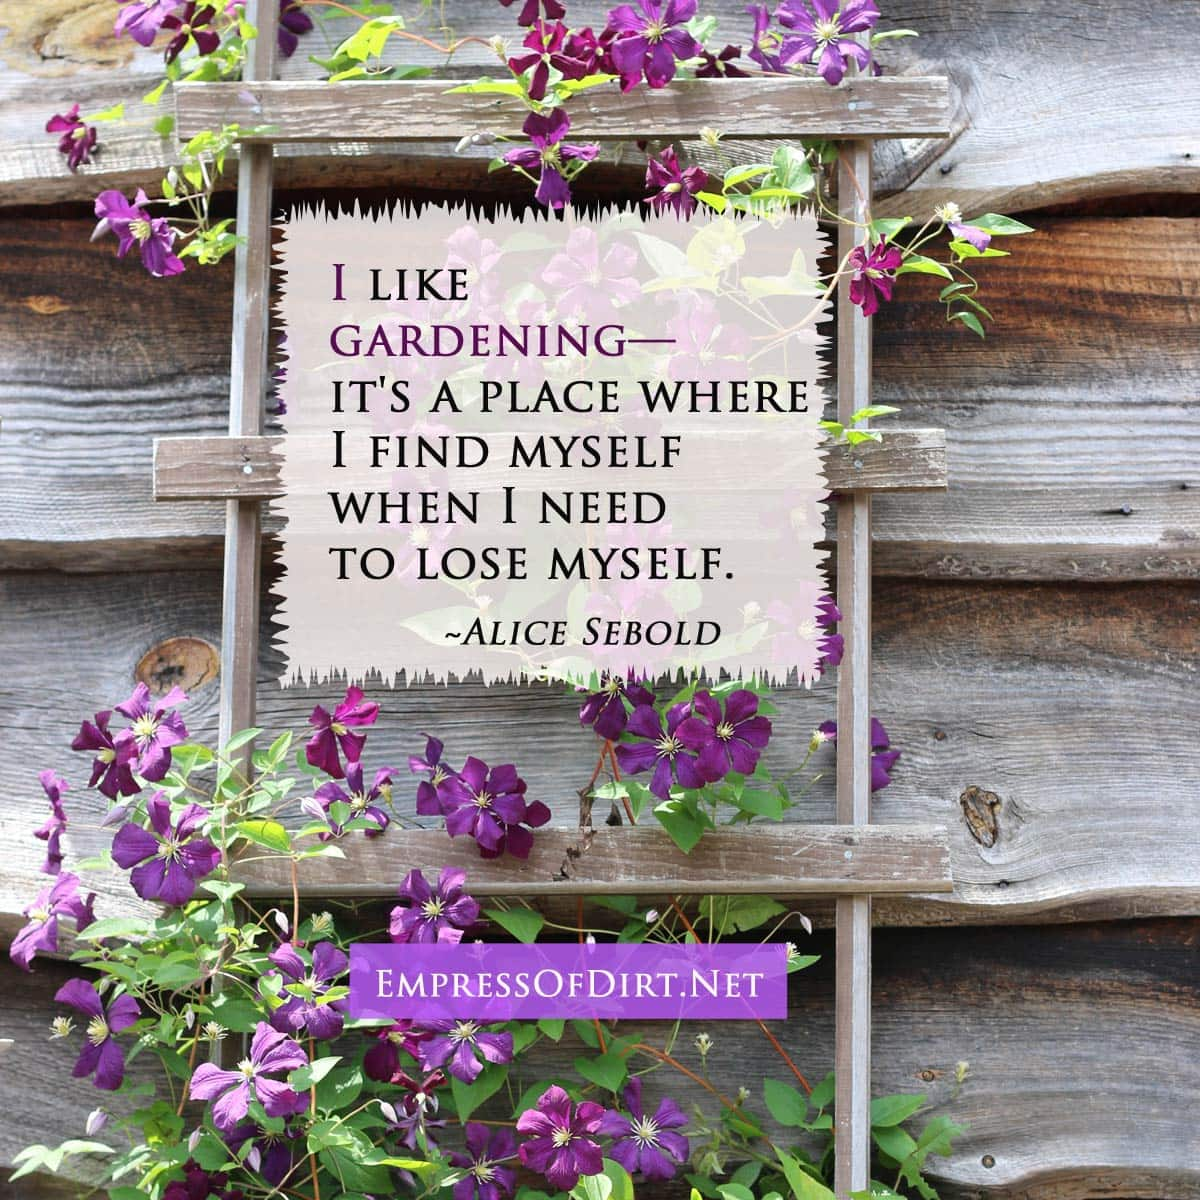 """Quote saying """"I live gardening. It's a place where I can find myself when I need to lose myself."""" by Alice Sebold."""